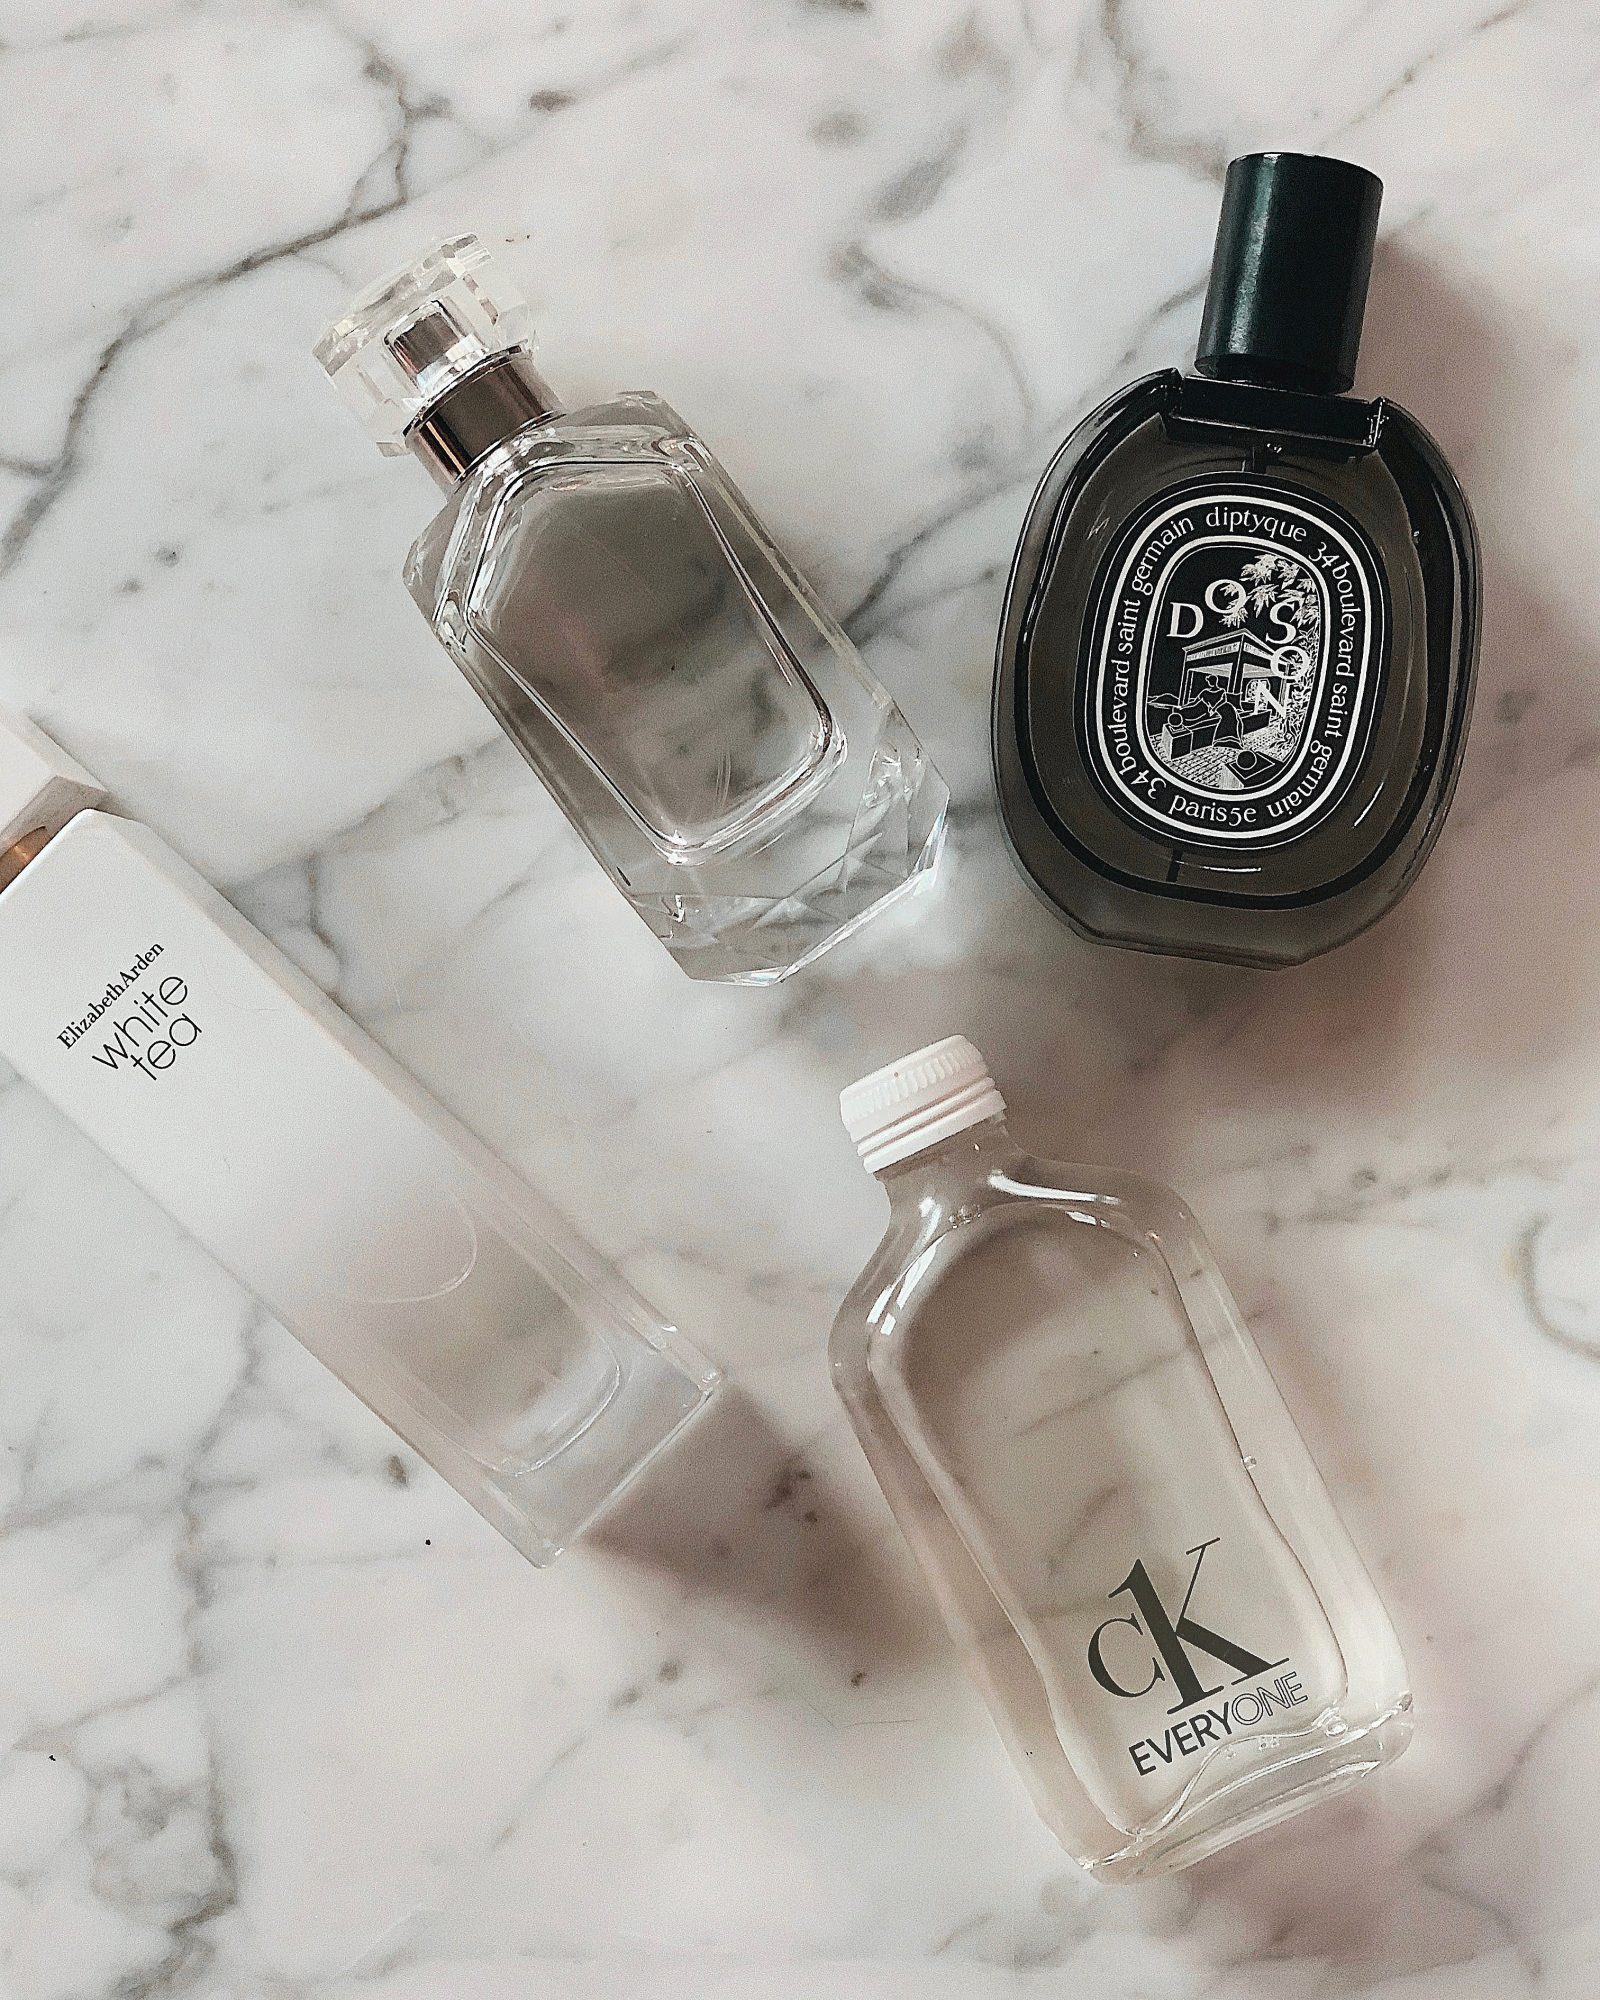 5 Favorite Fresh Scents